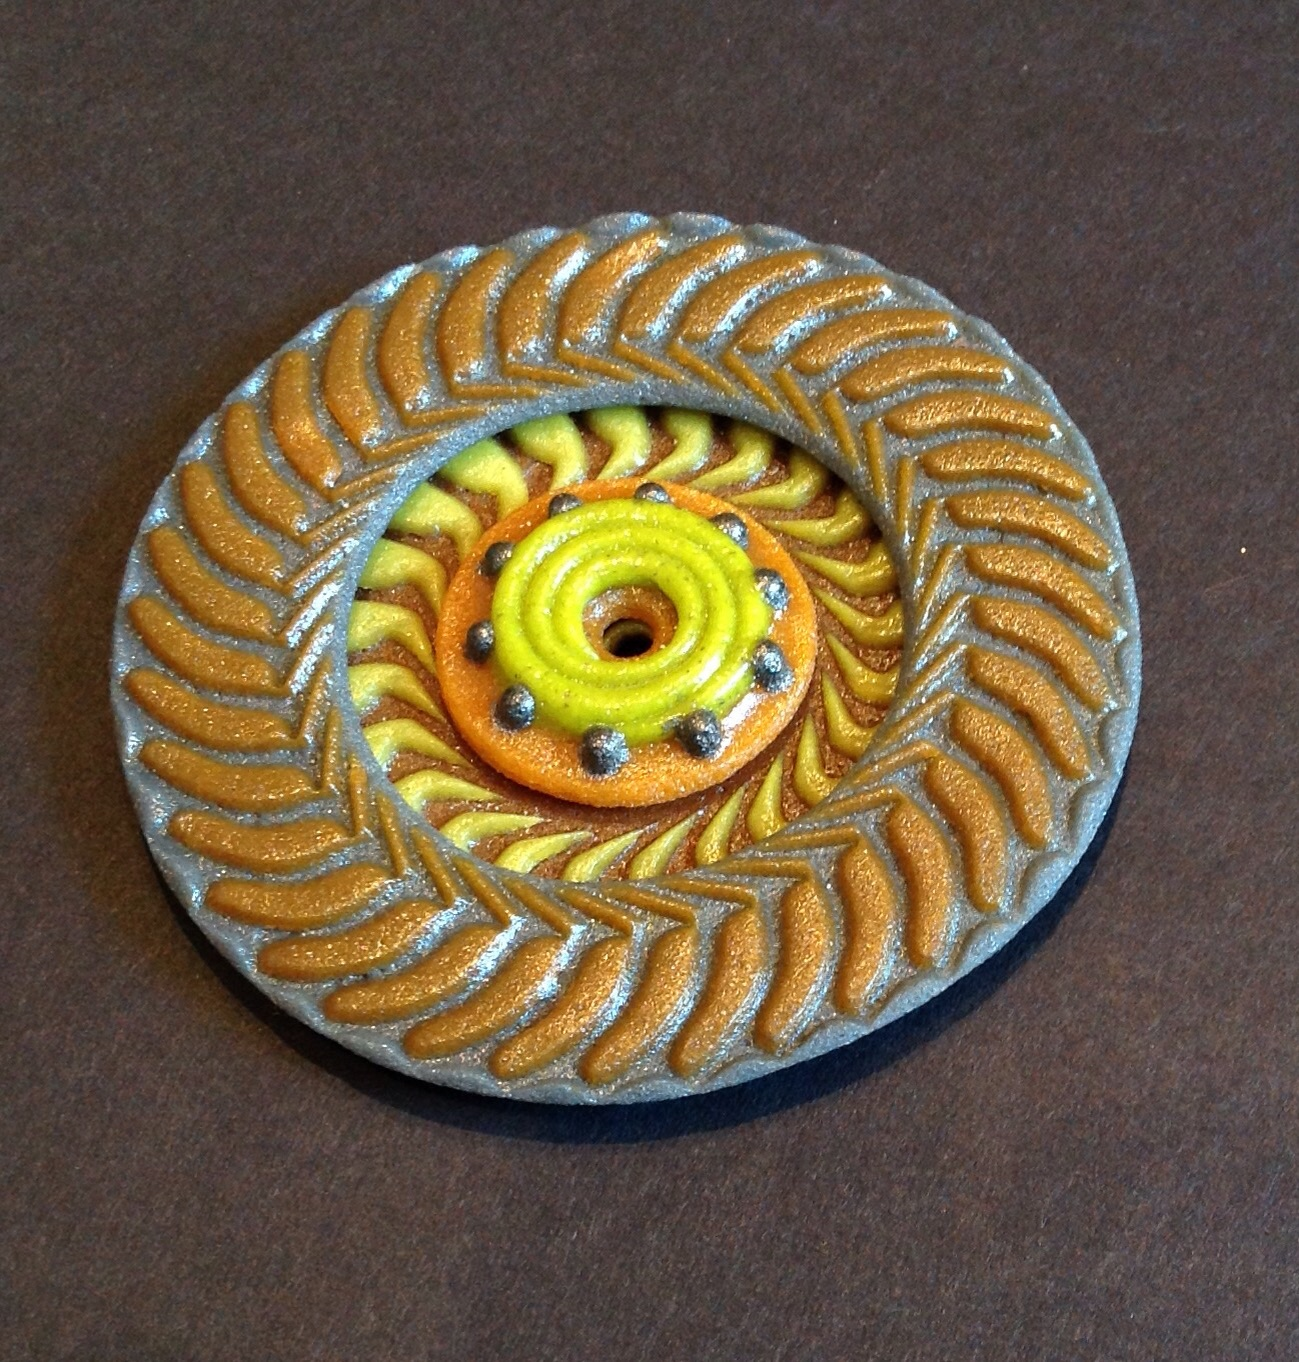 New Glass Clay Focal piece for your own jewelry design.